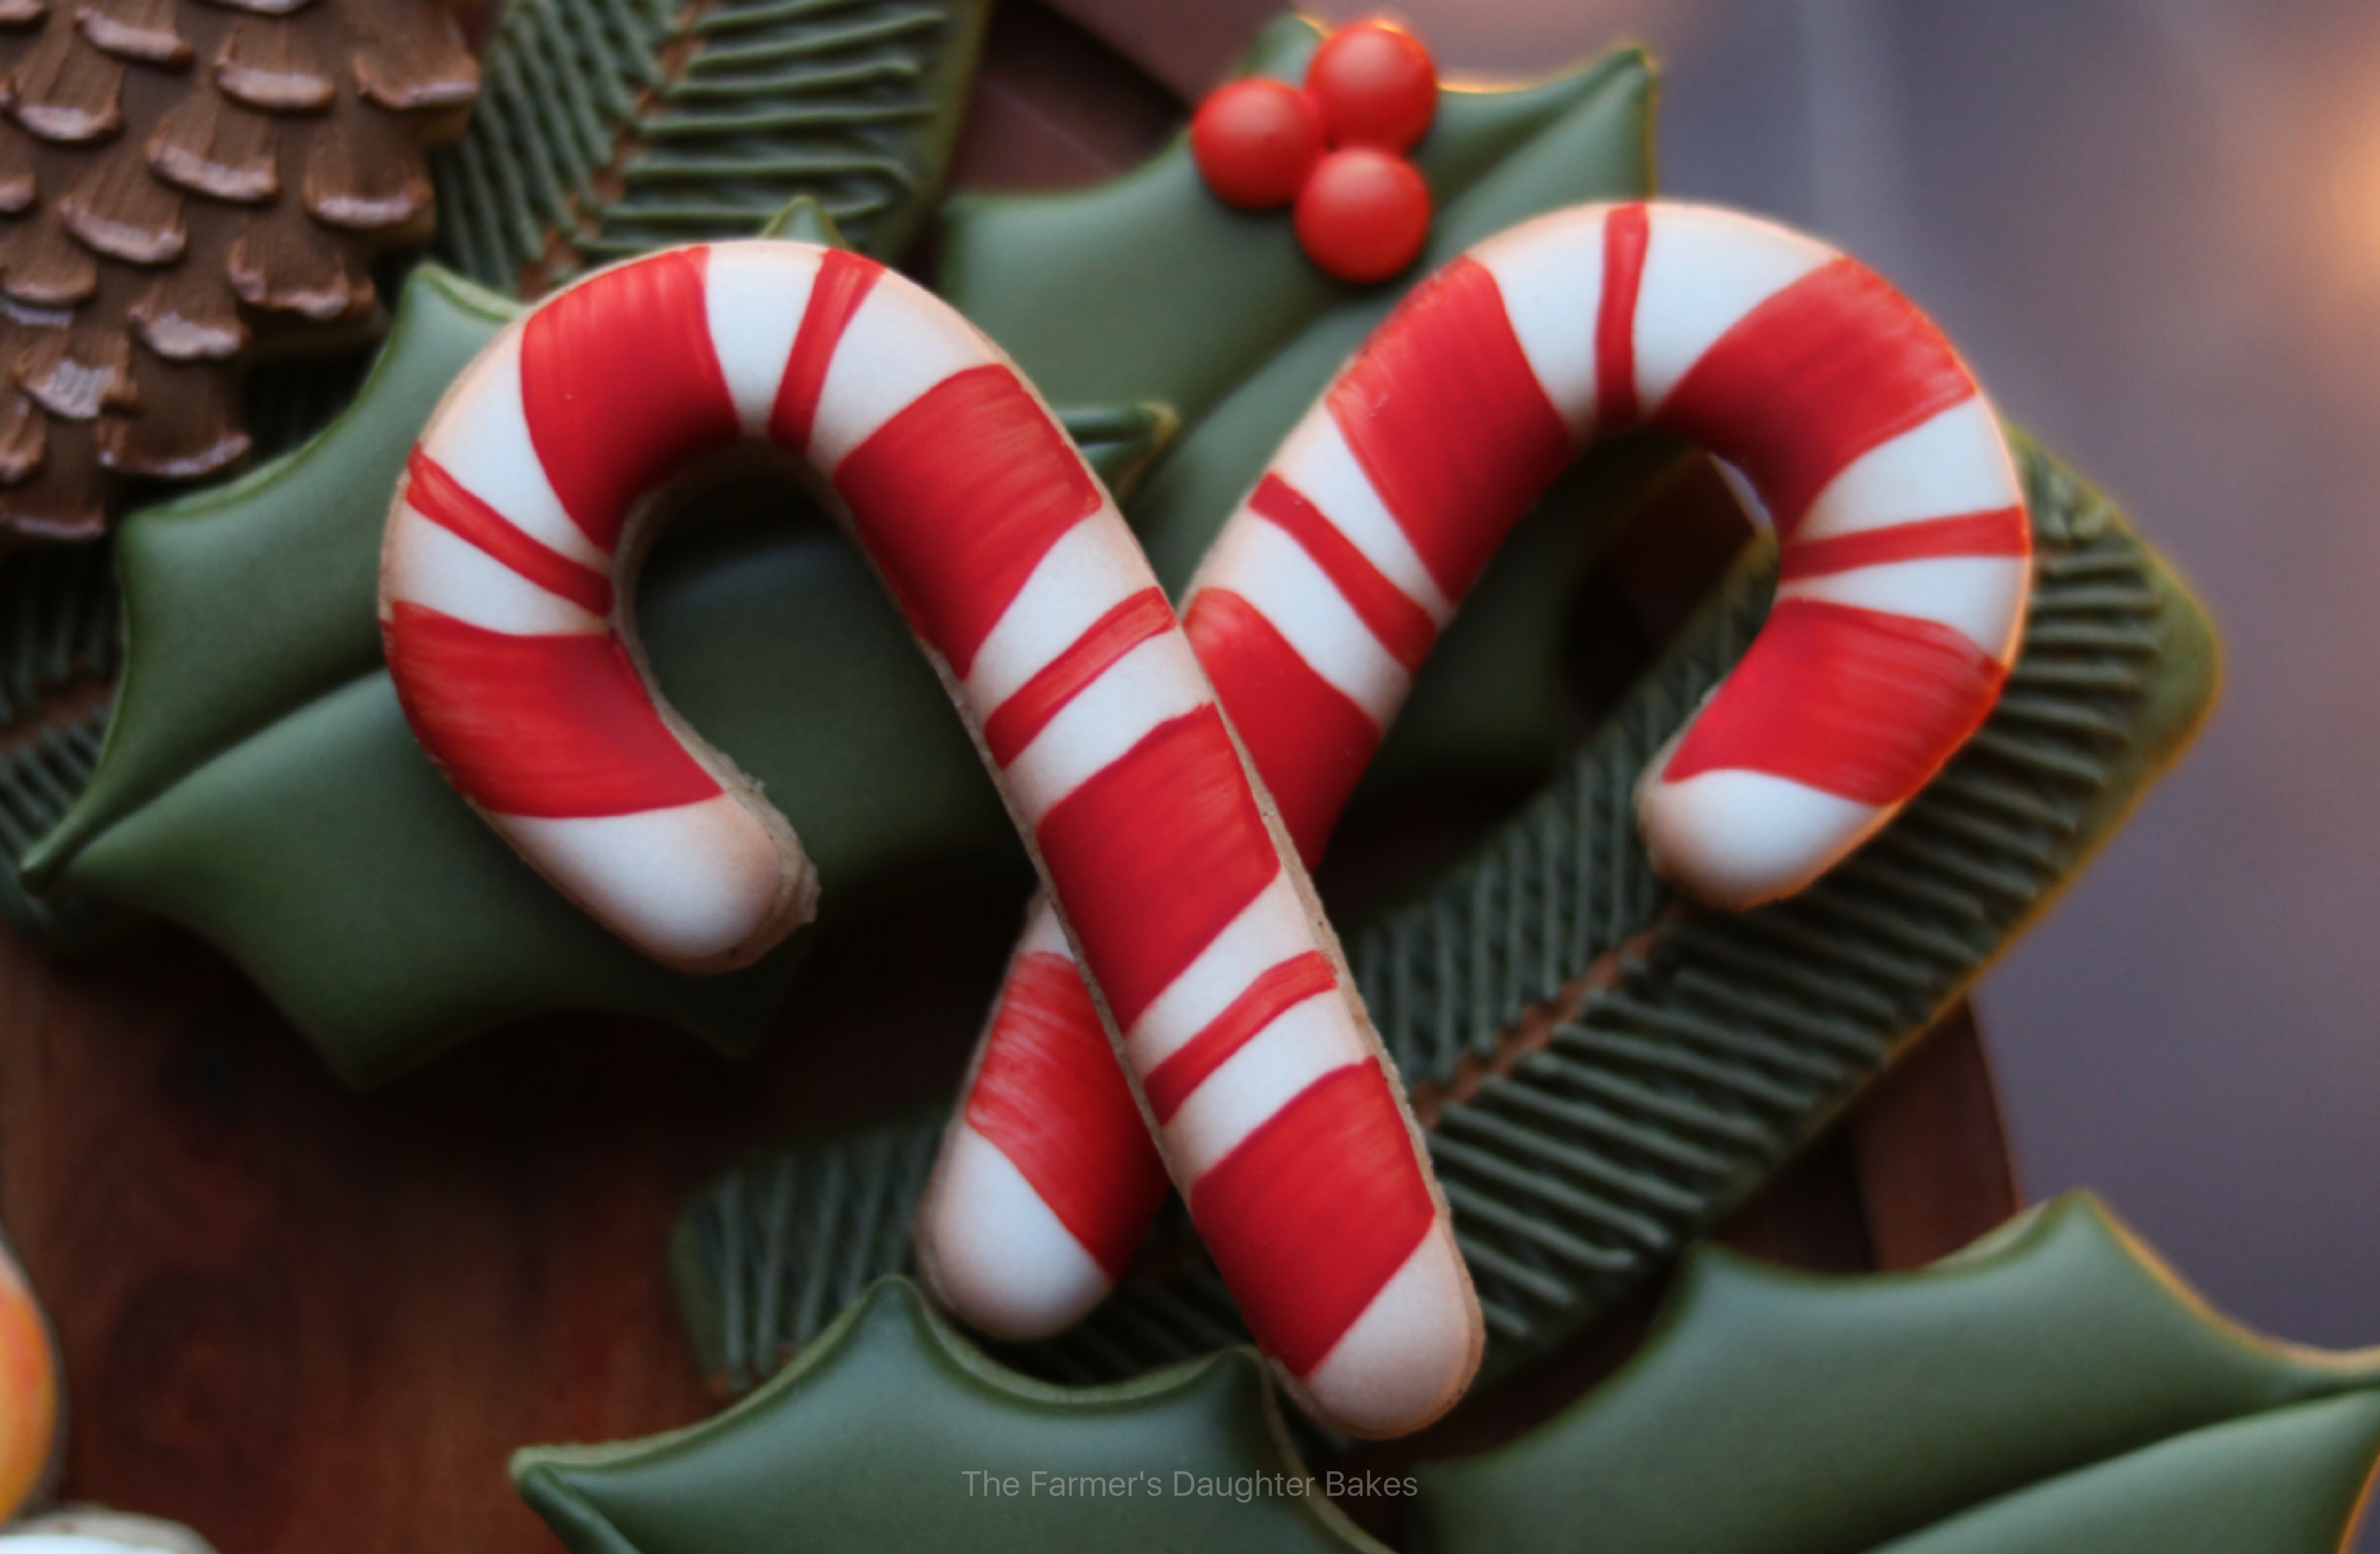 candy cane, cookies, candy cane cookies, holly cookies, christmas cookies, cookie wreath